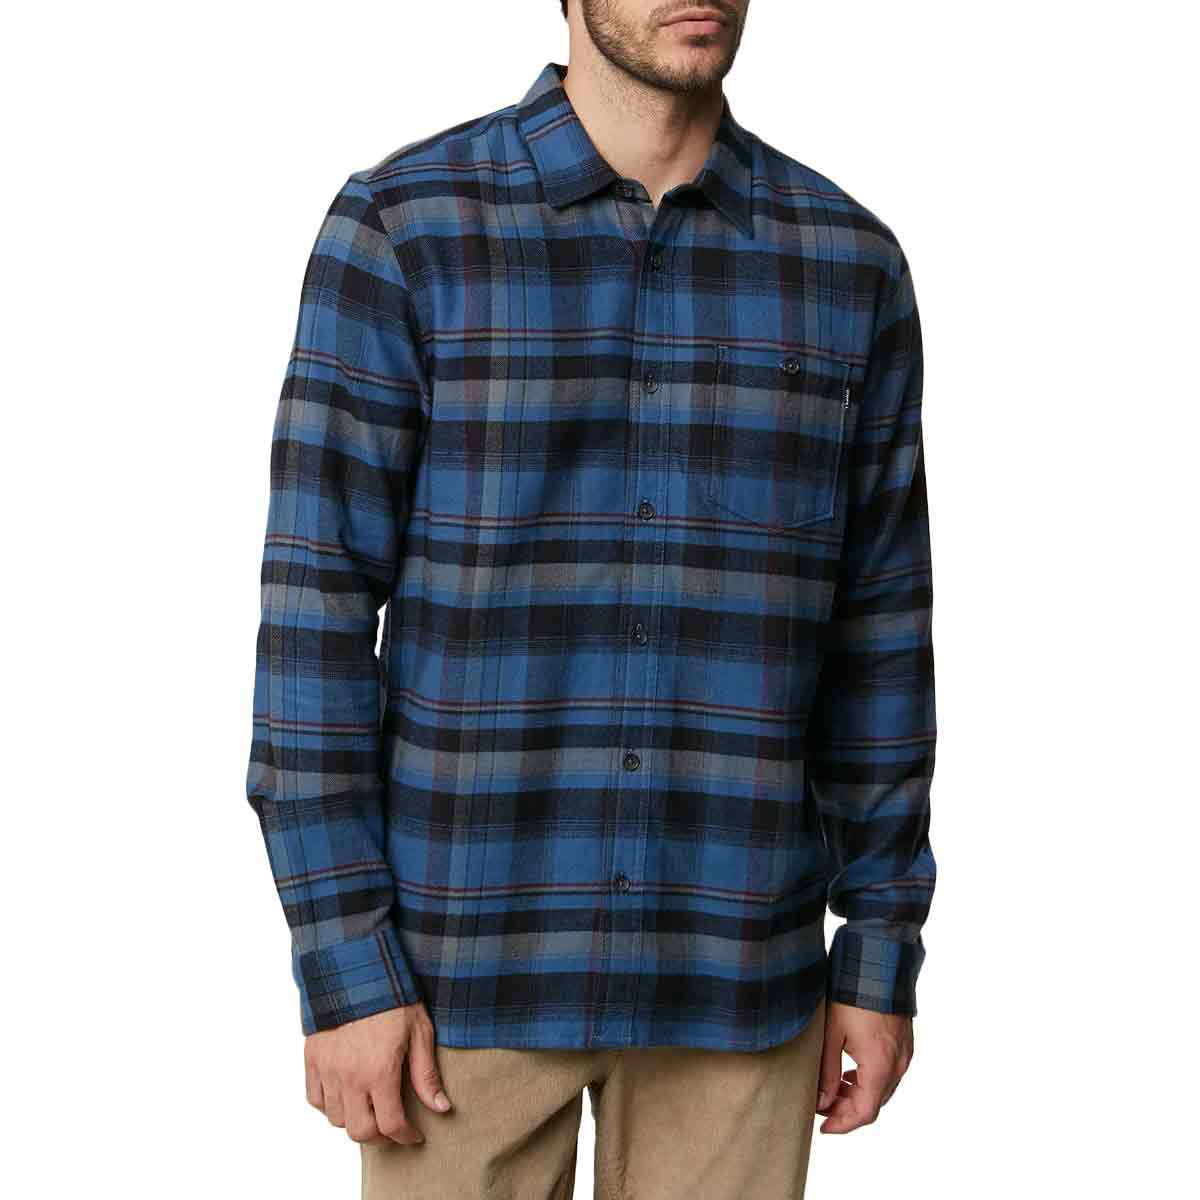 O'neill Guys' Redmond Long-Sleeve Flannel Shirt